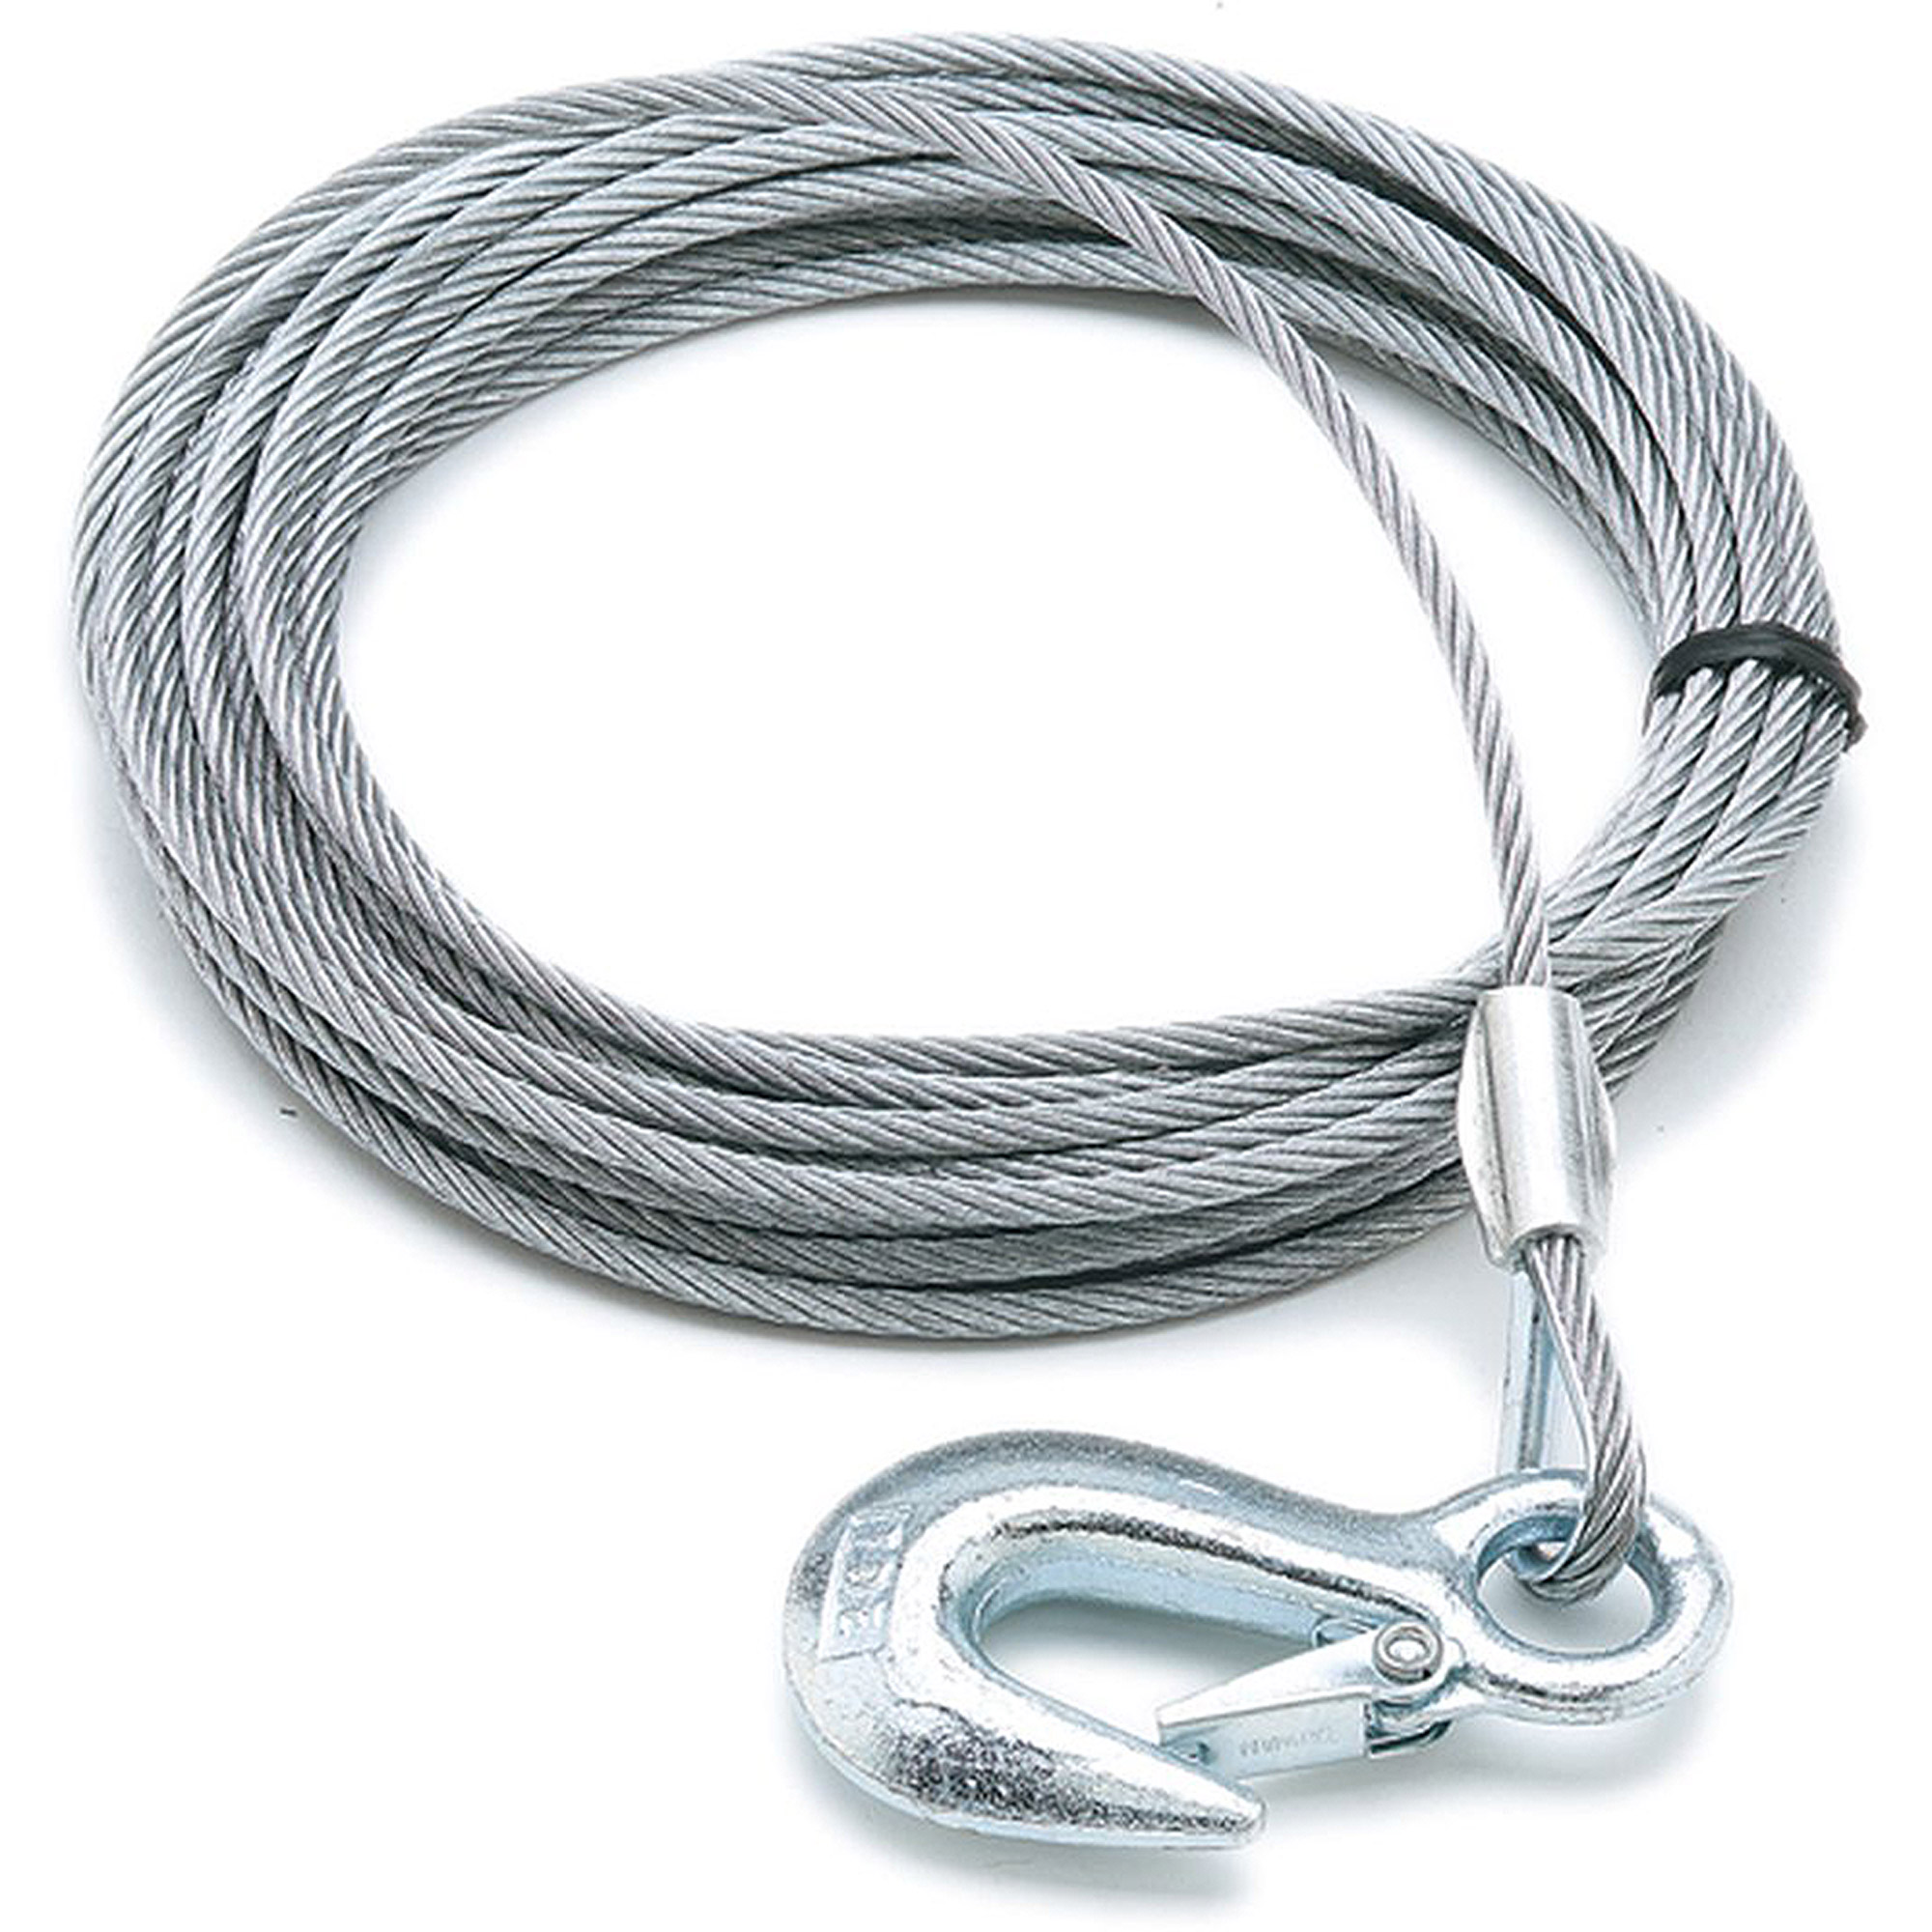 "SeaSense Trailer Winch Cable, 3 16"" x 25', 4000 lbs by Generic"